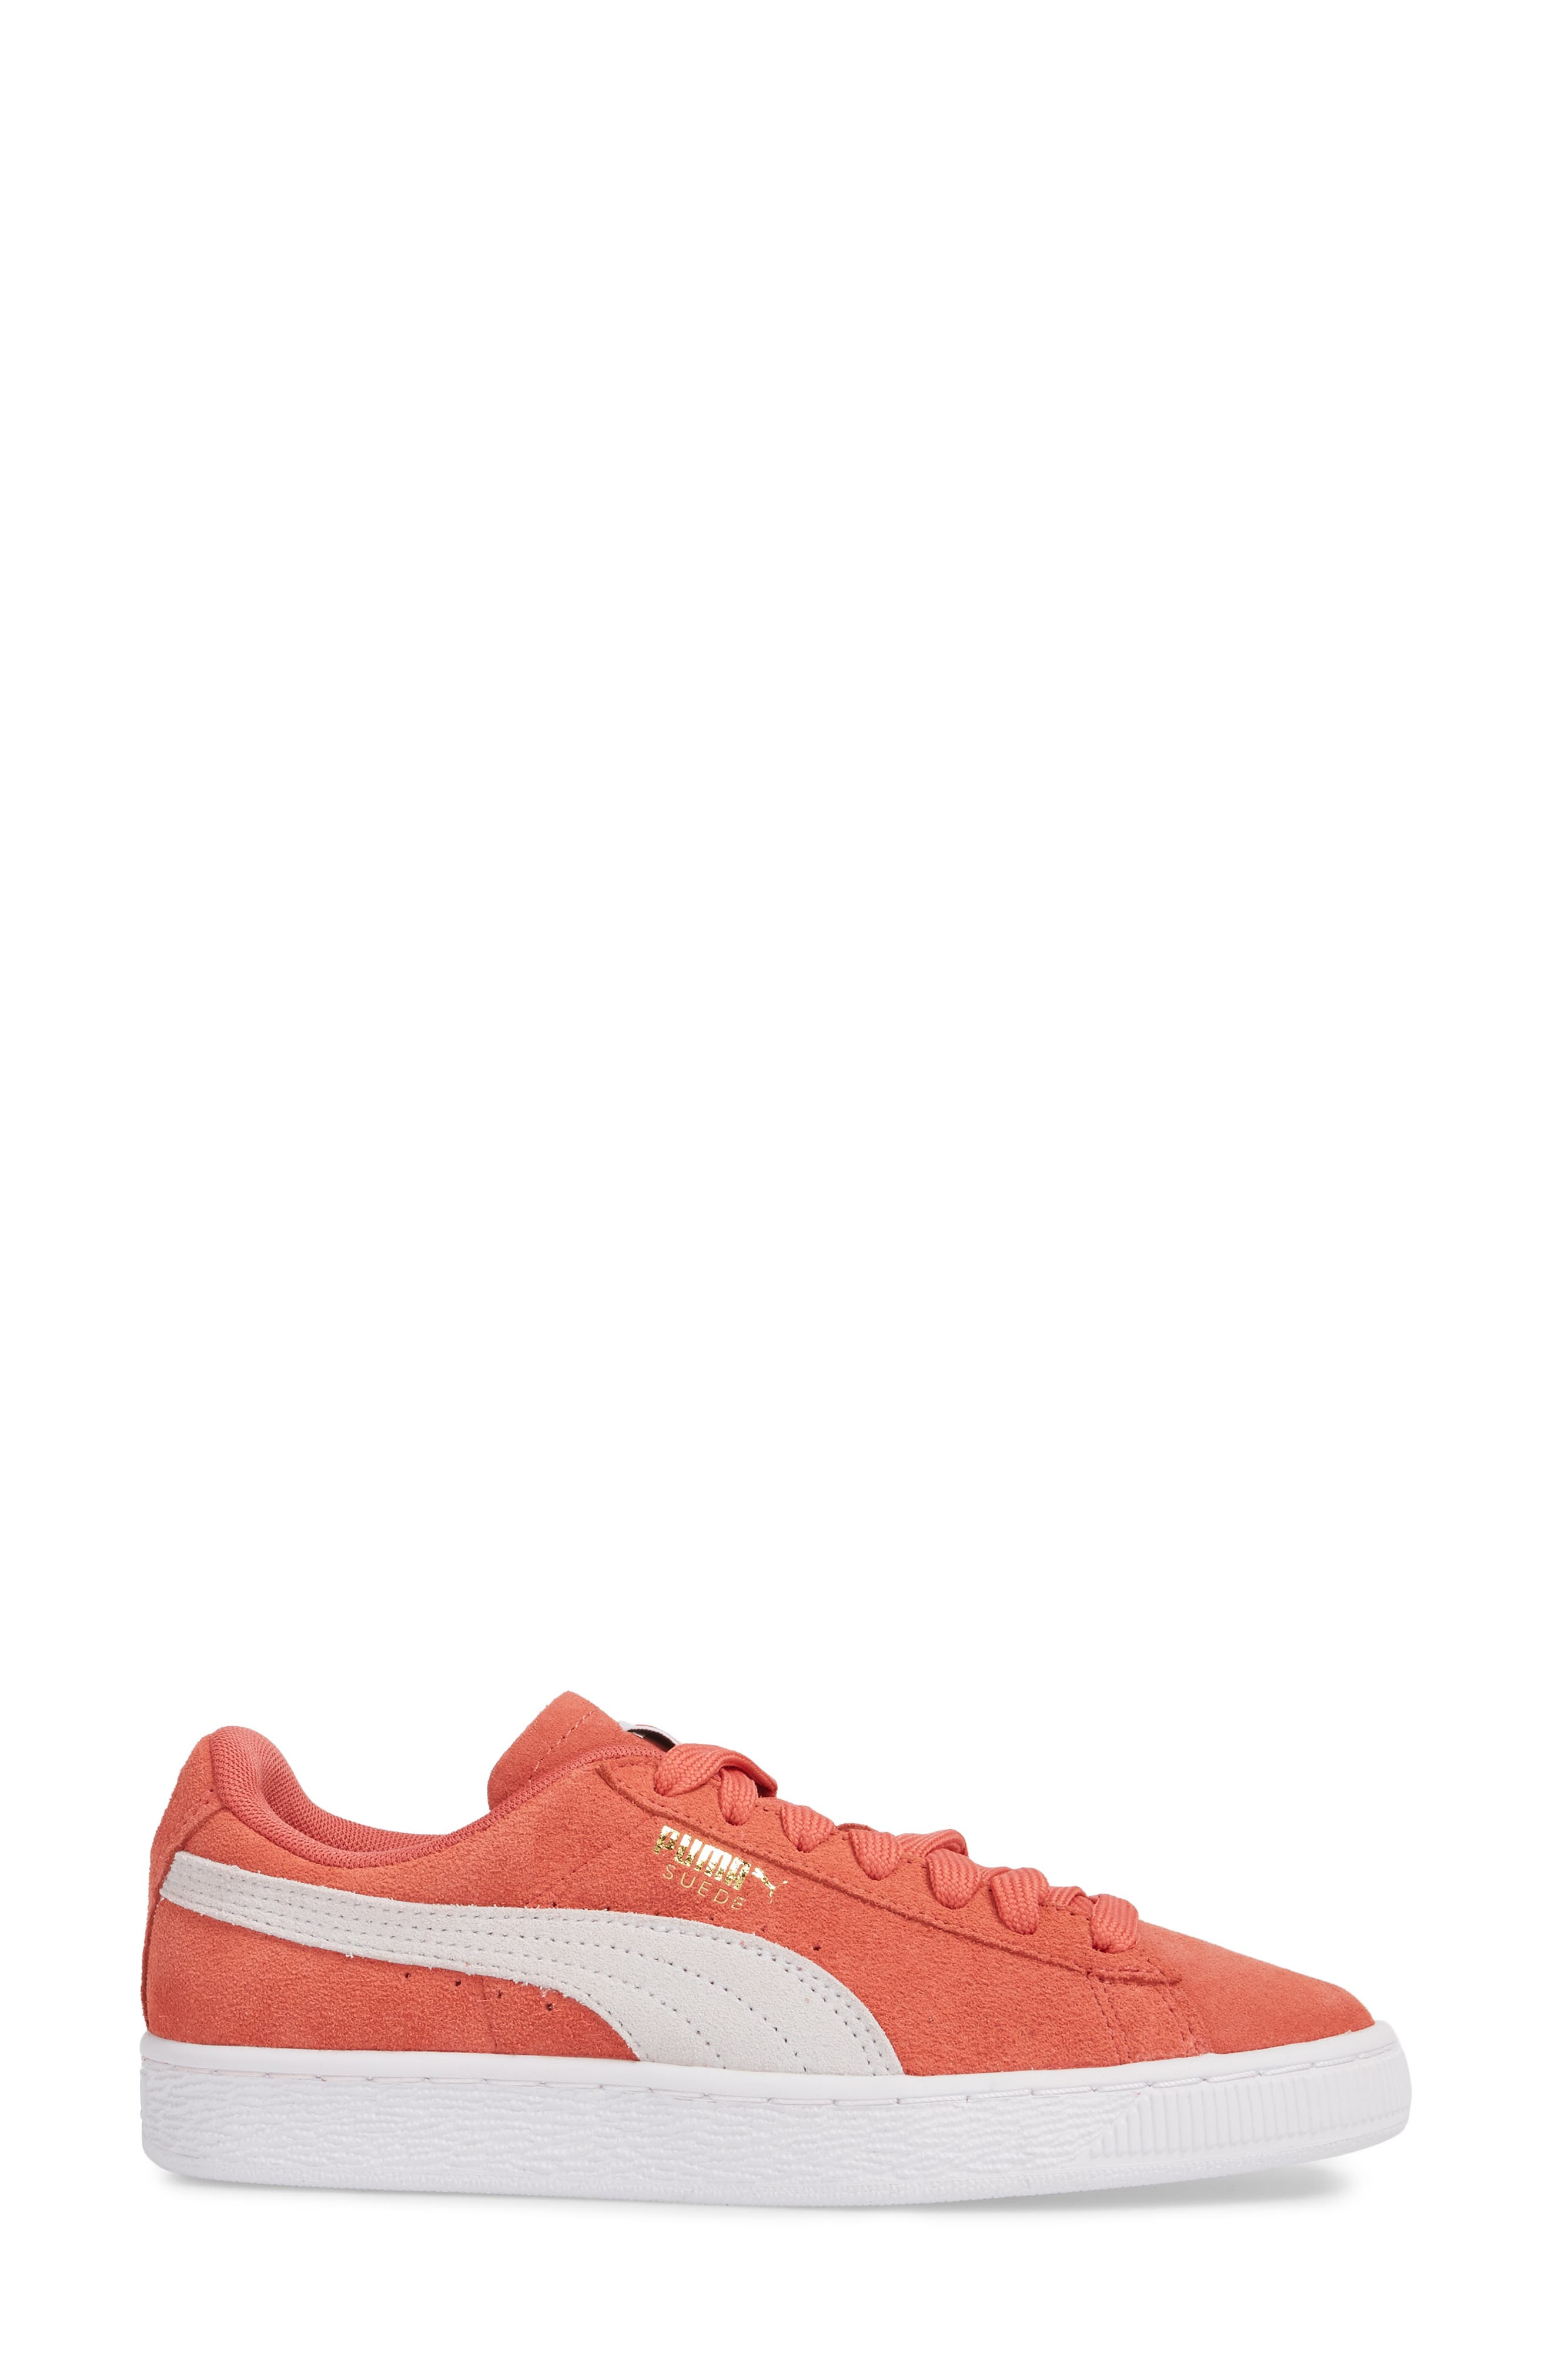 Suede Sneaker,                             Alternate thumbnail 2, color,                             Spiced Coral/ Puma White